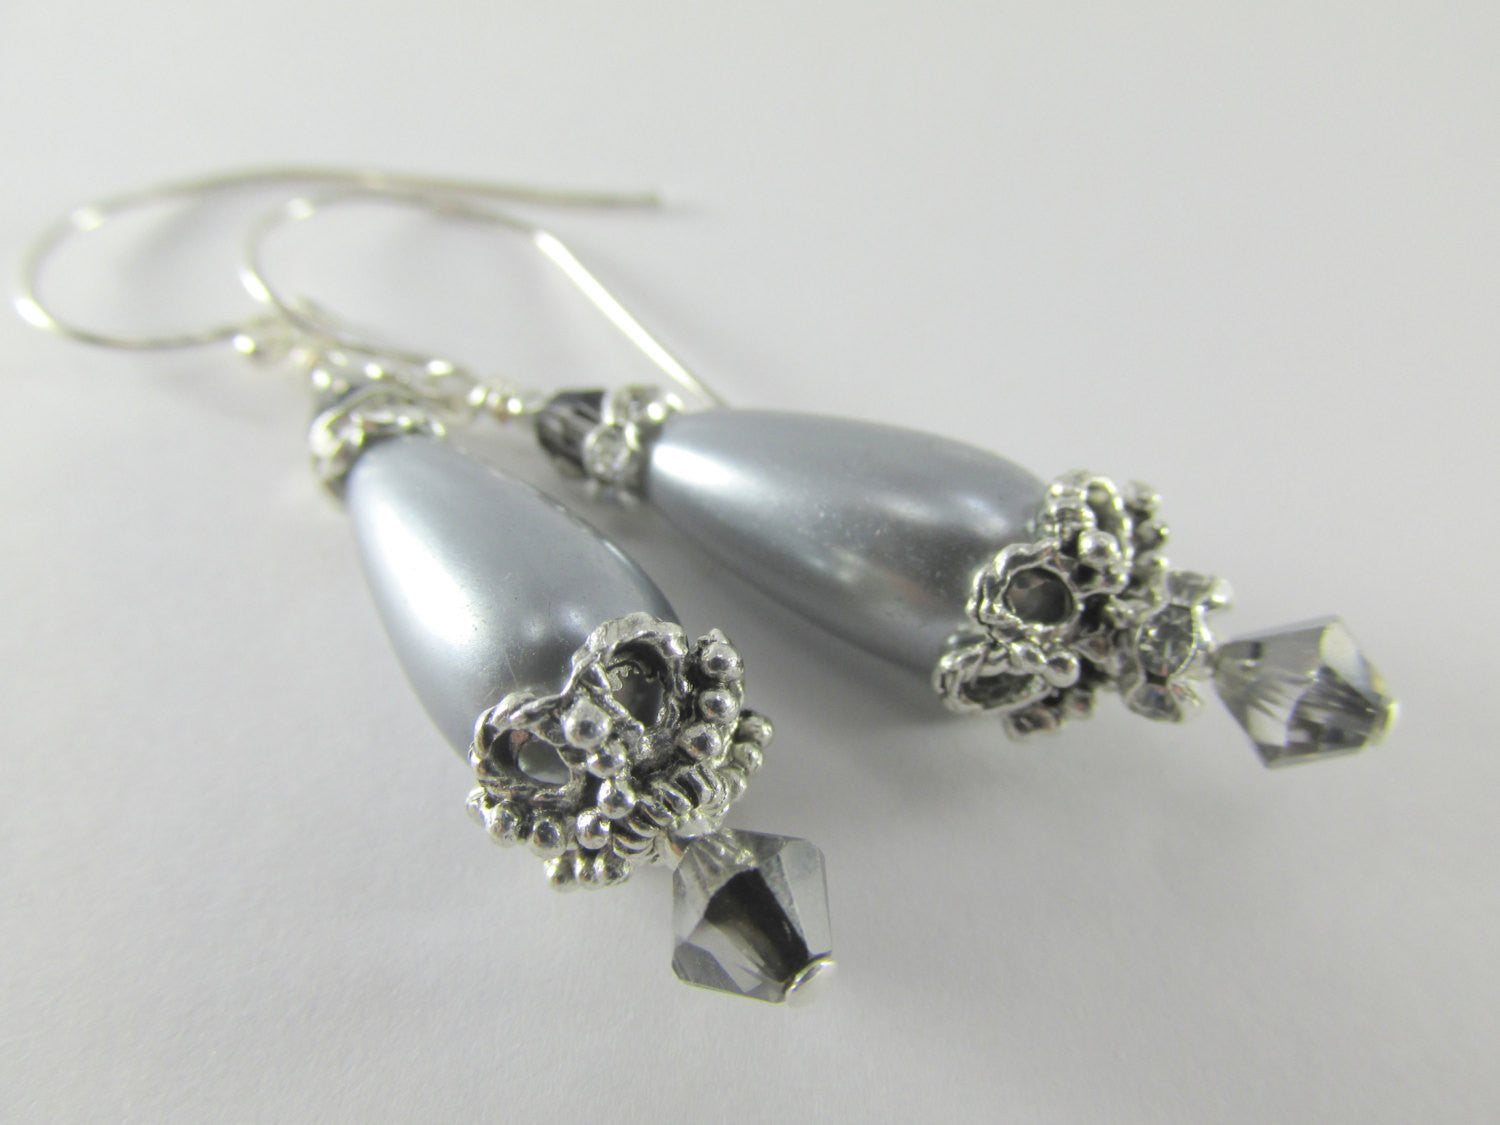 Dark Gray Pearl Teardrop and Crystal Night Swarovksi Bridal or Bridesmaid Earrings on Sterling Silver Wires - Odyssey Creations